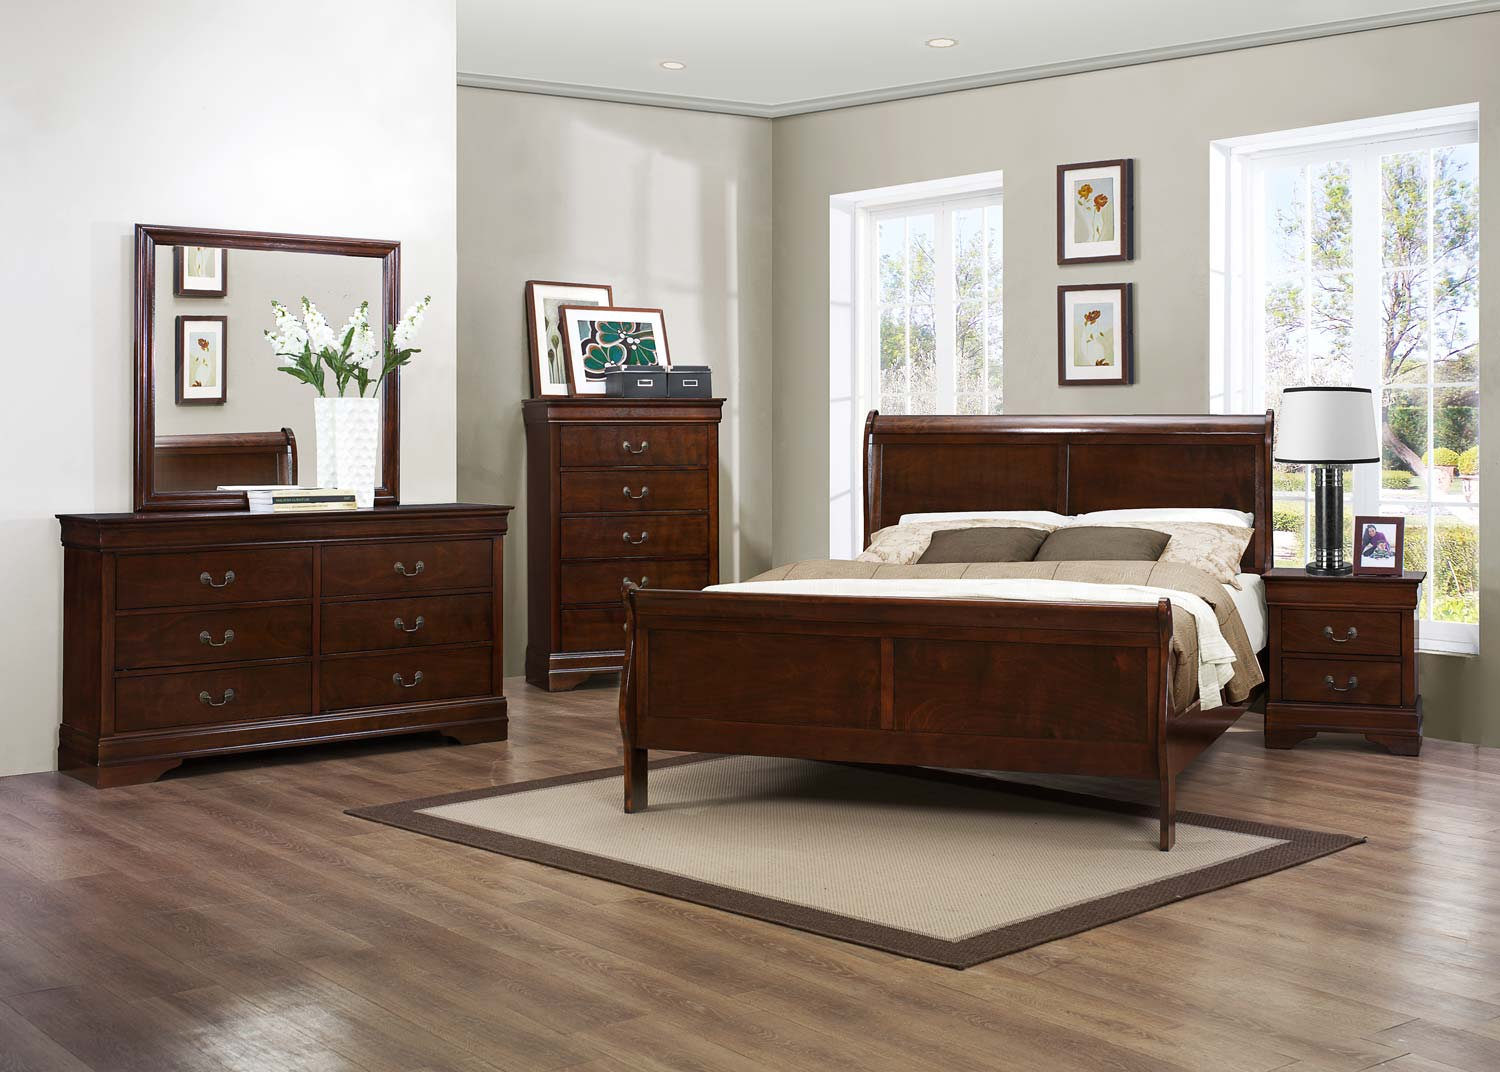 CHERRY LOUIS PHILIPPE QUEEN 6PC BEDROOM SET #2147 | Big Dan\'s ...